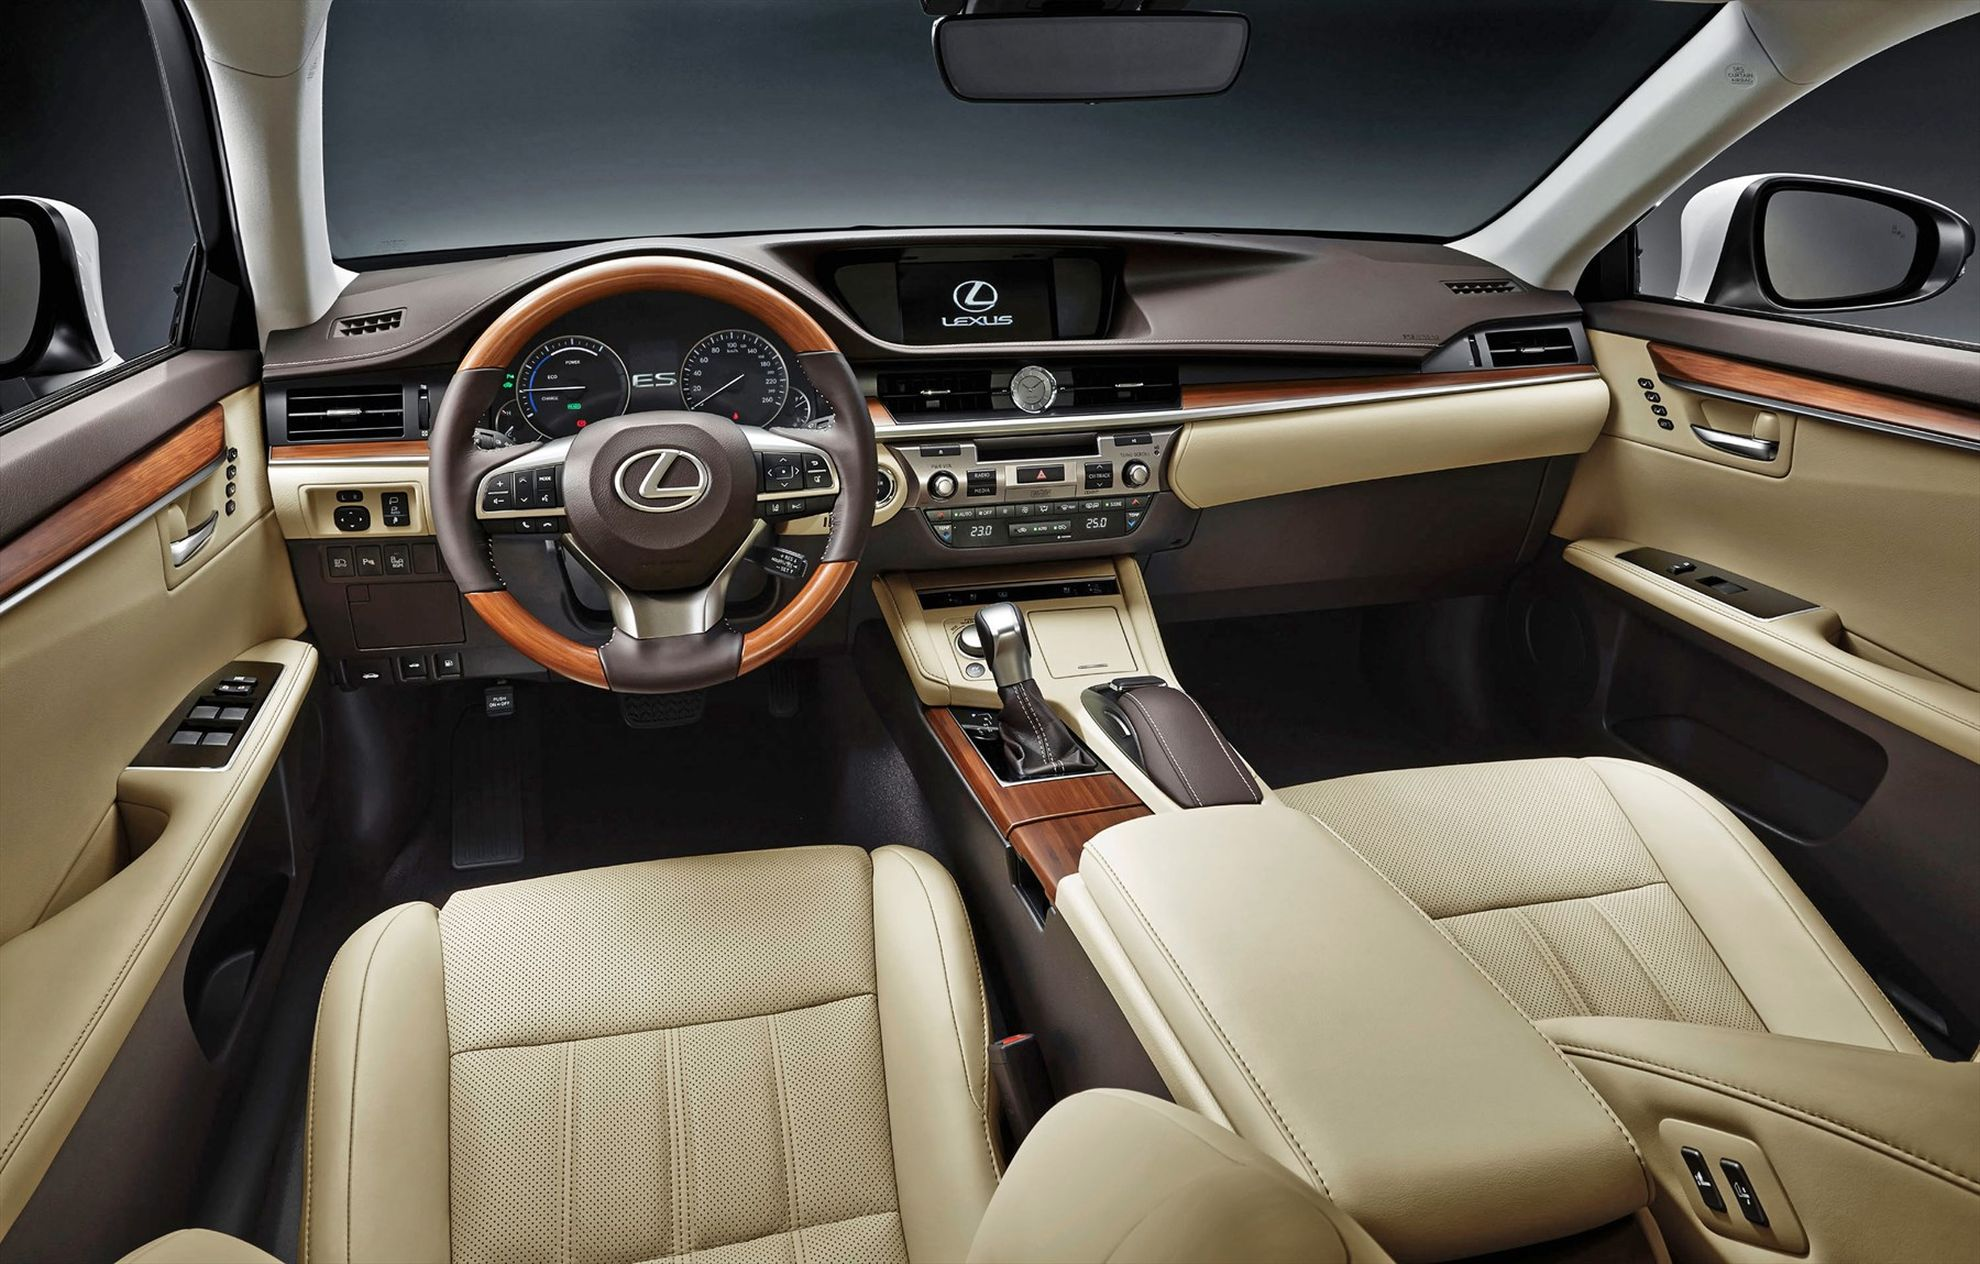 lexus-es-at-the-shanghai-international-motor-show-interior